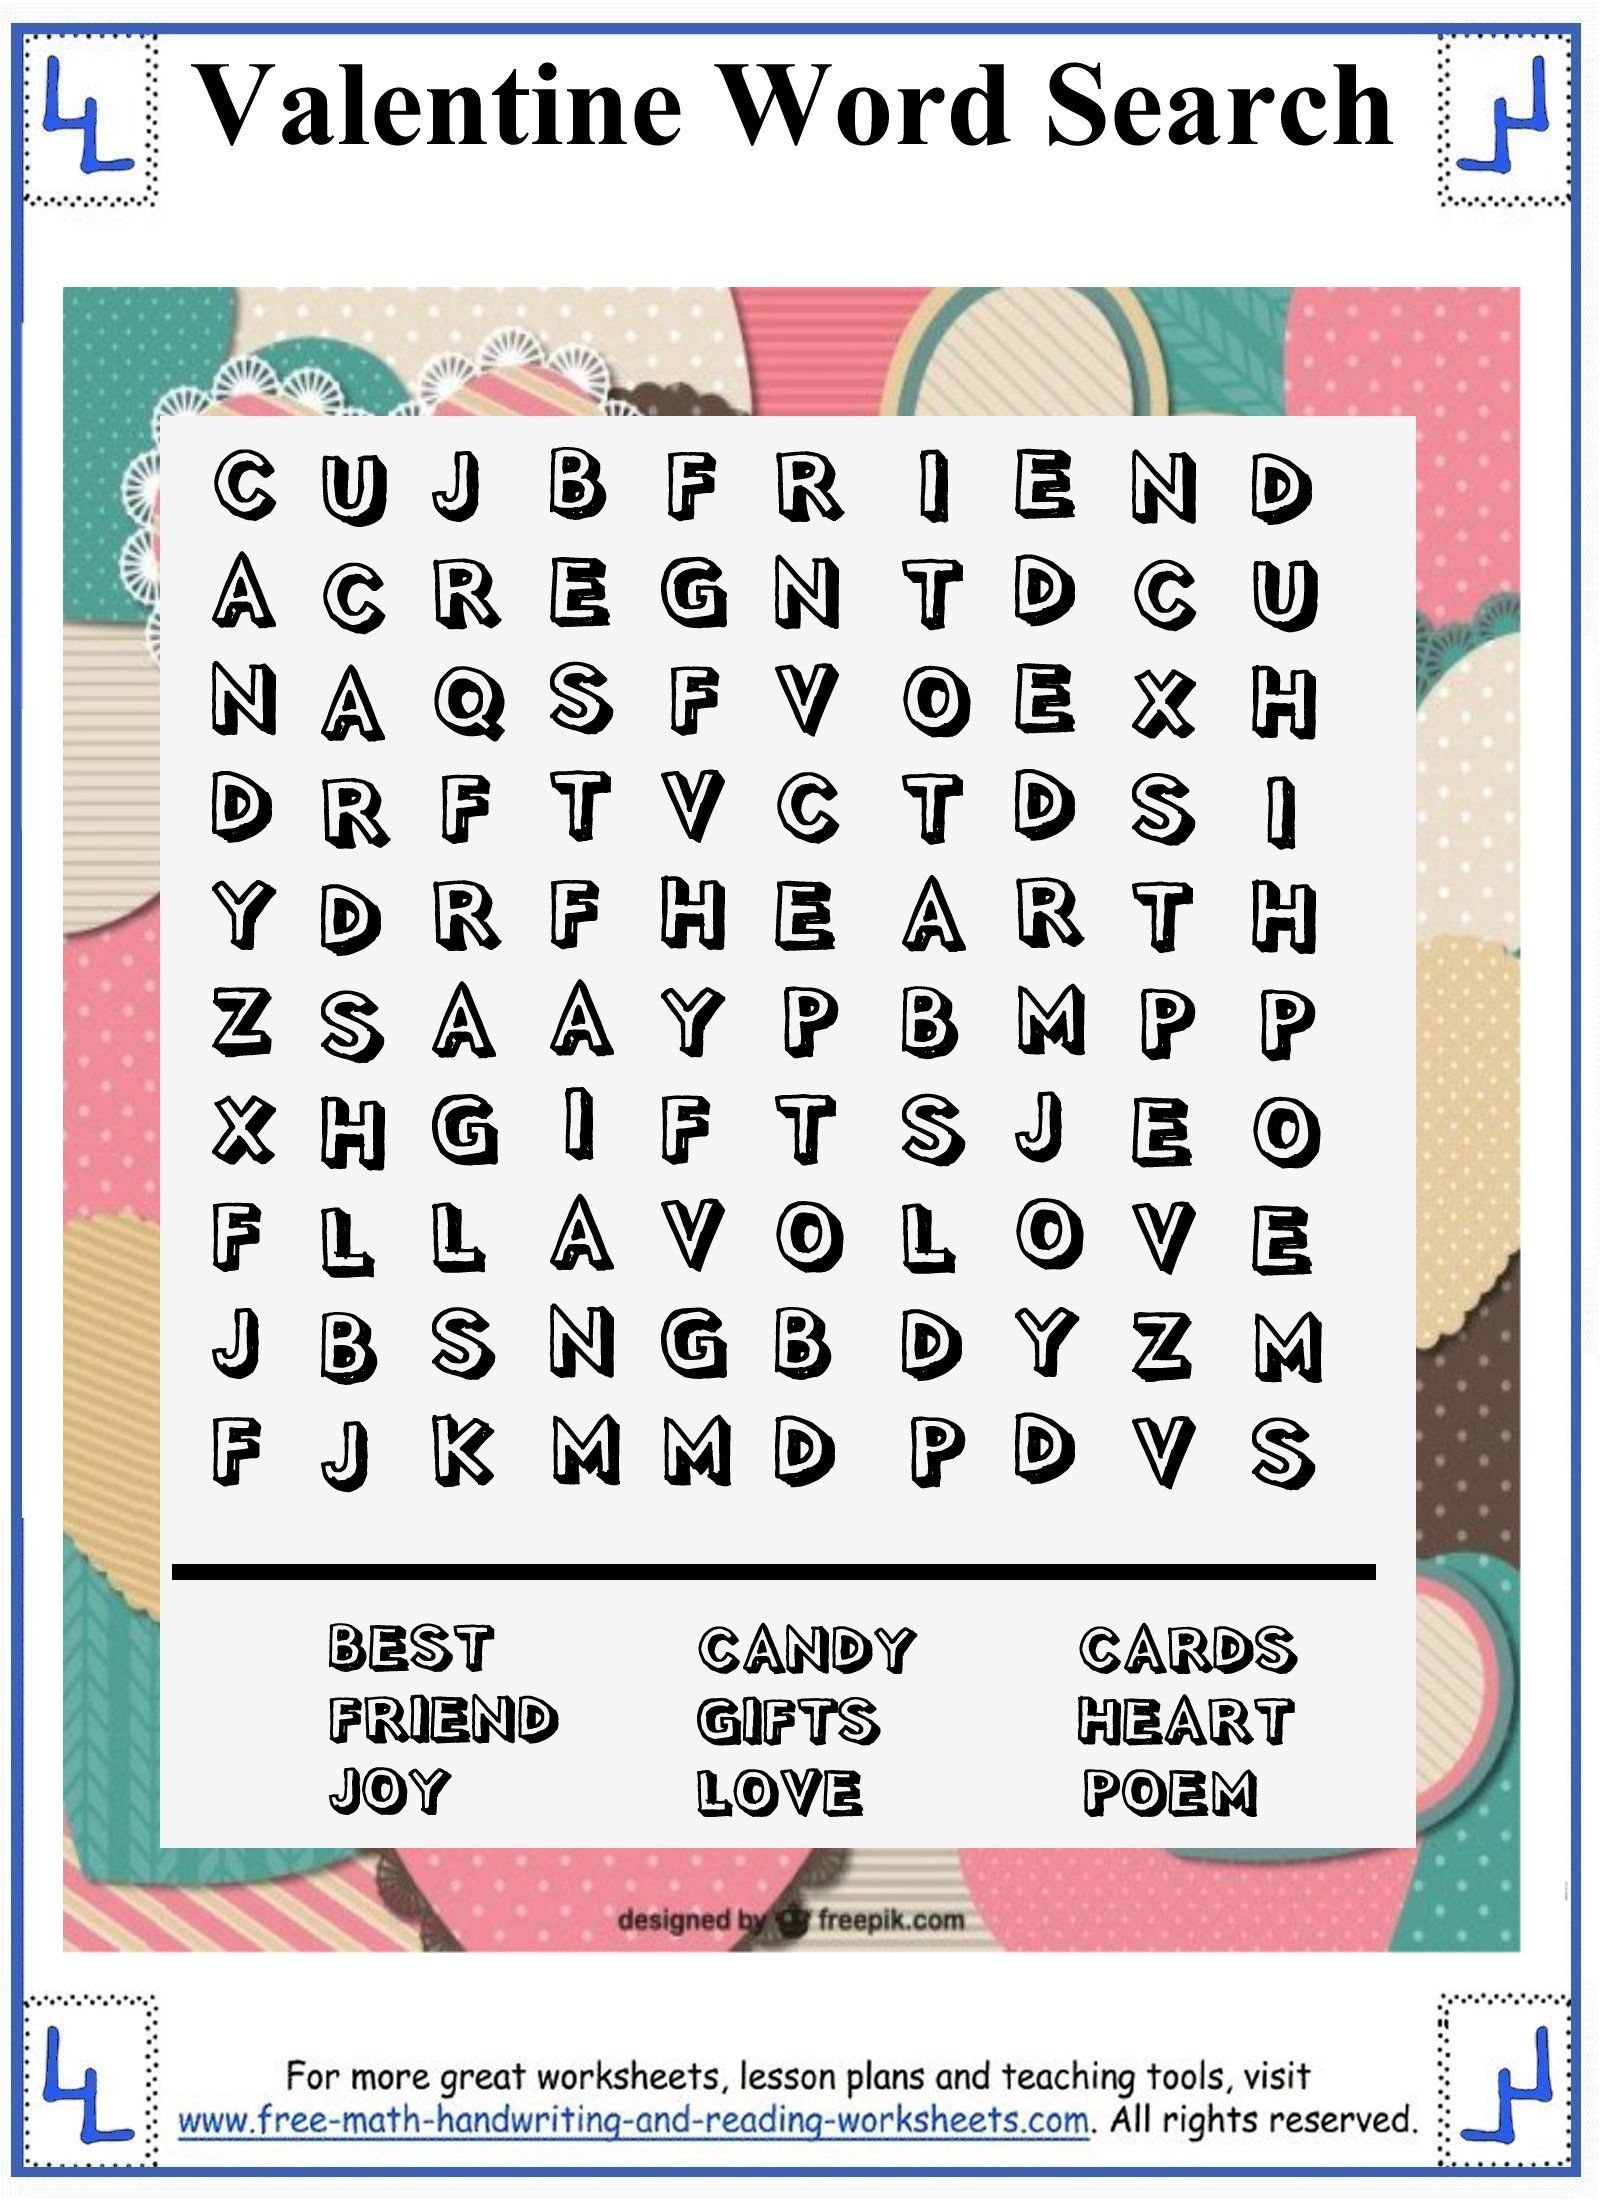 Valentine Word Search - Printable Puzzles - 10X10 Wordsearch Grid - Printable Christian Valentine Puzzles